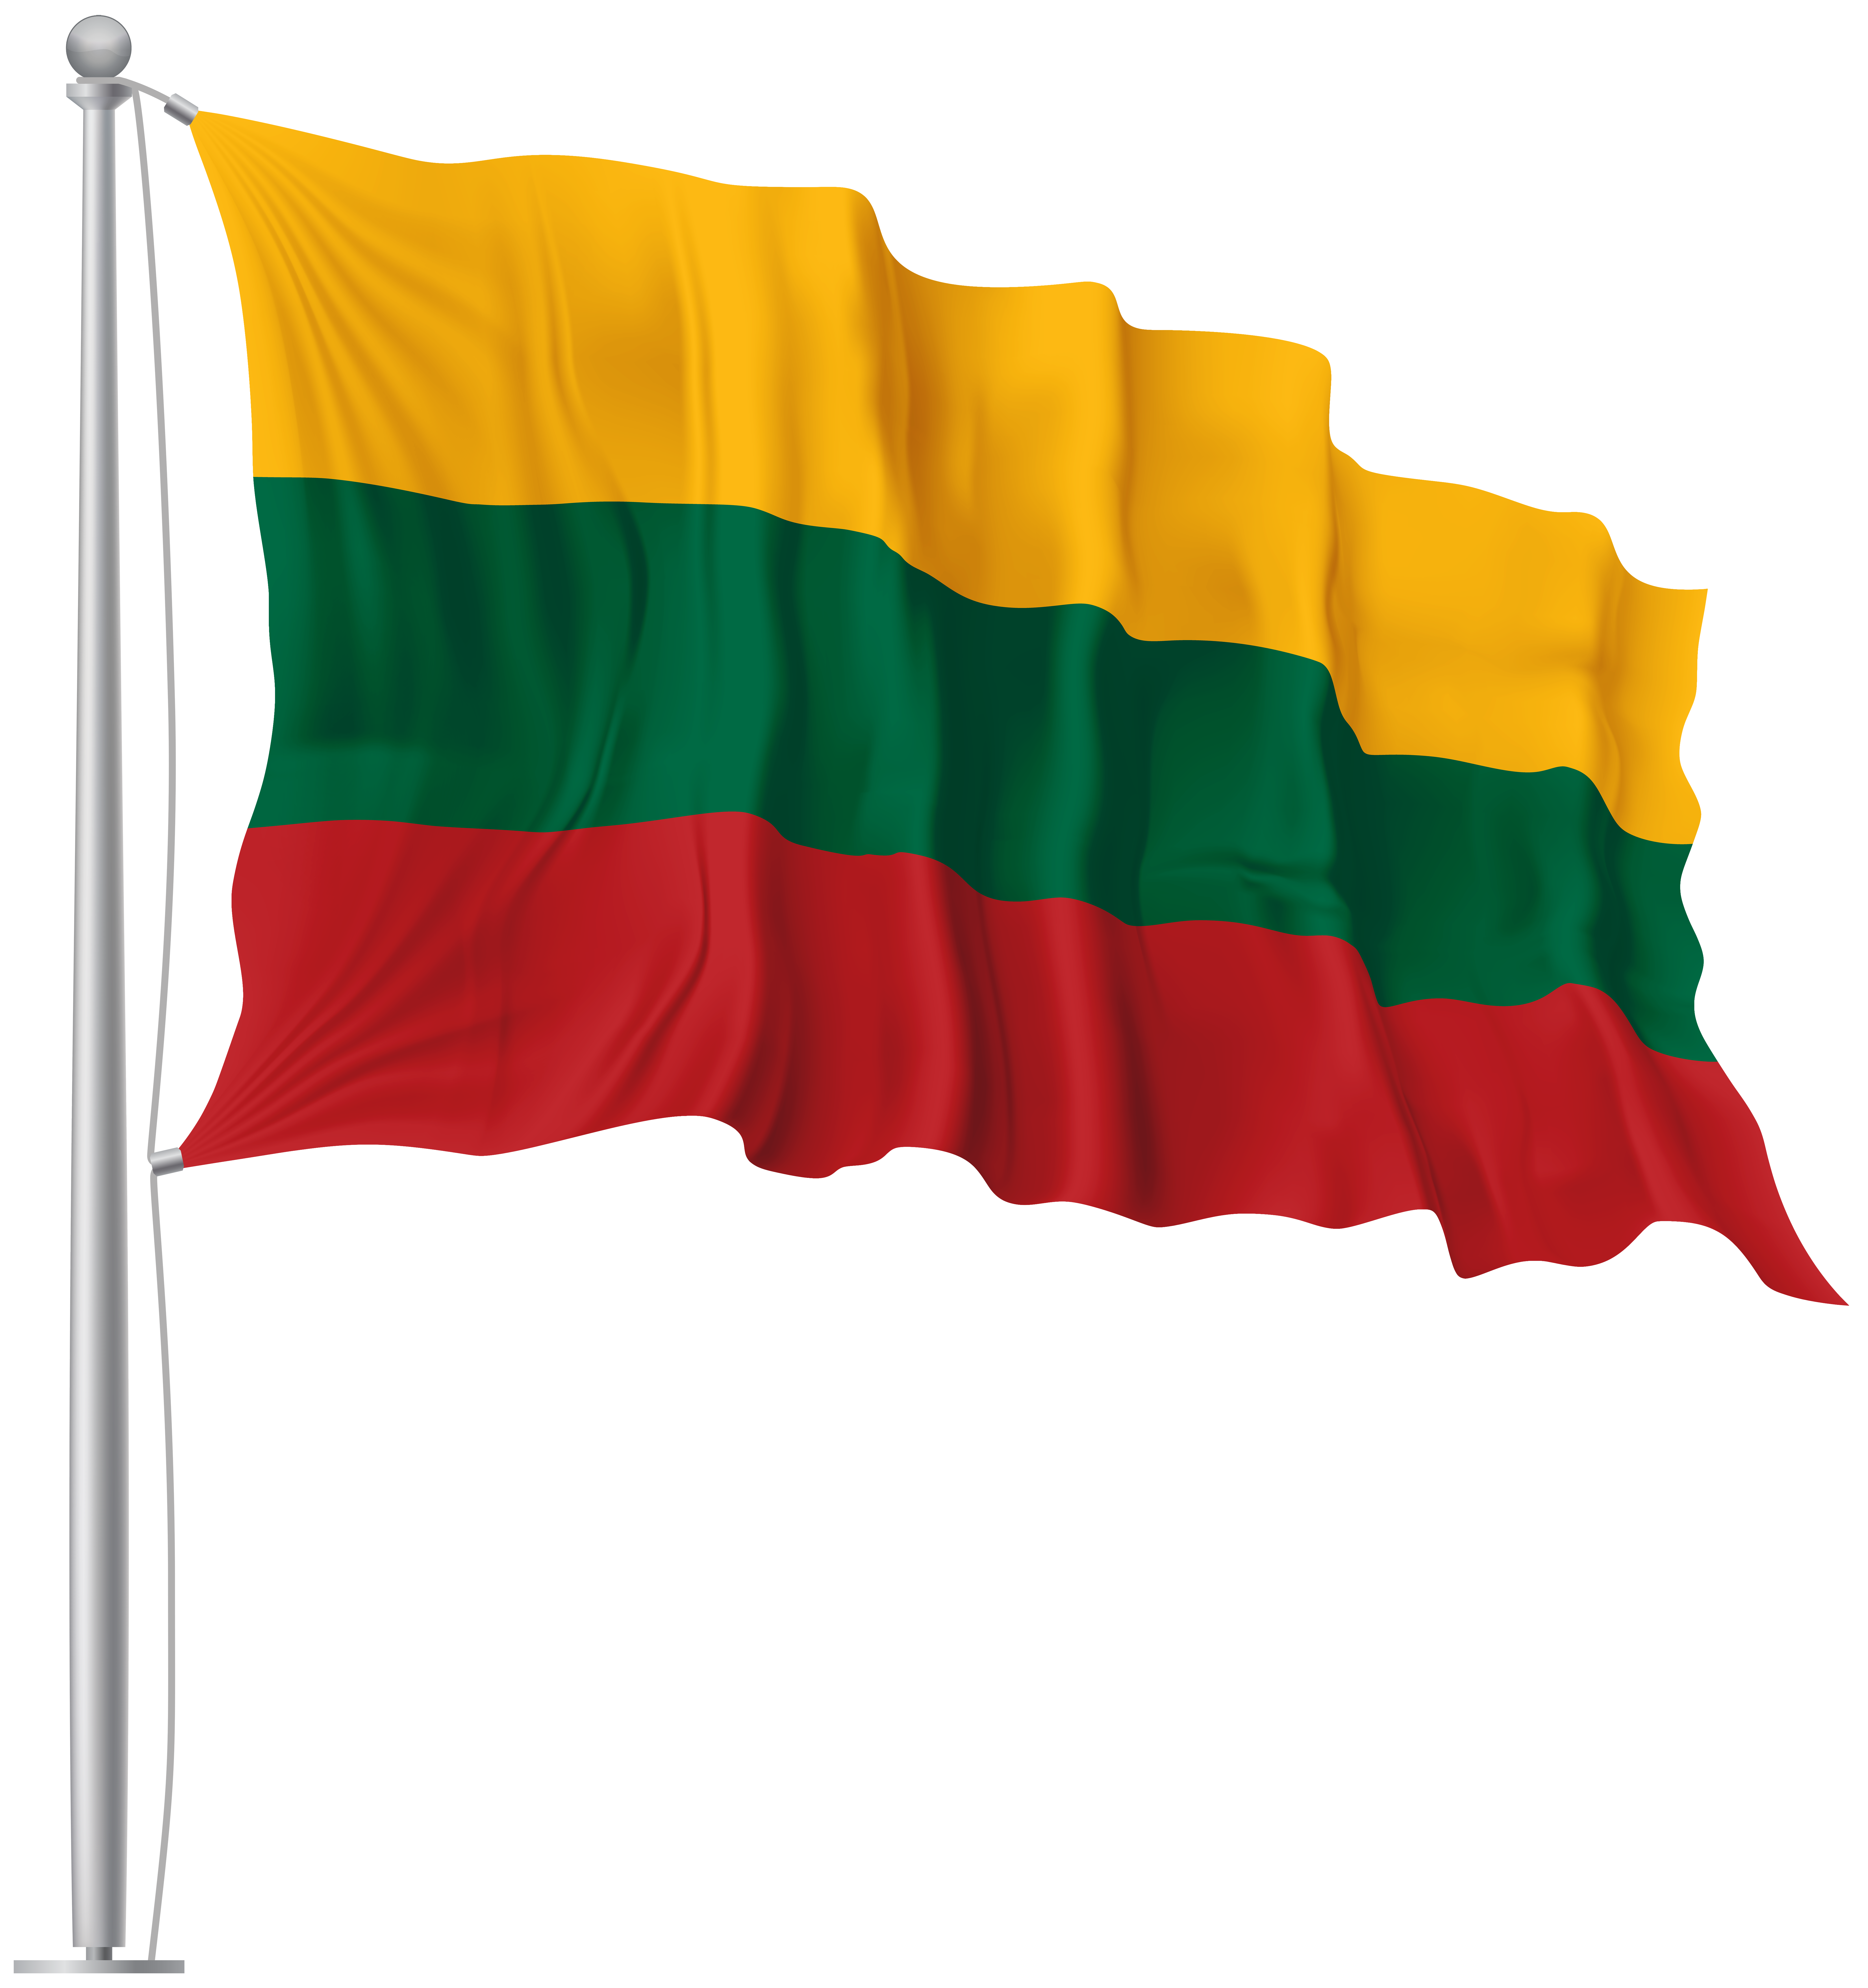 Lithuania Waving Flag PNG Image.